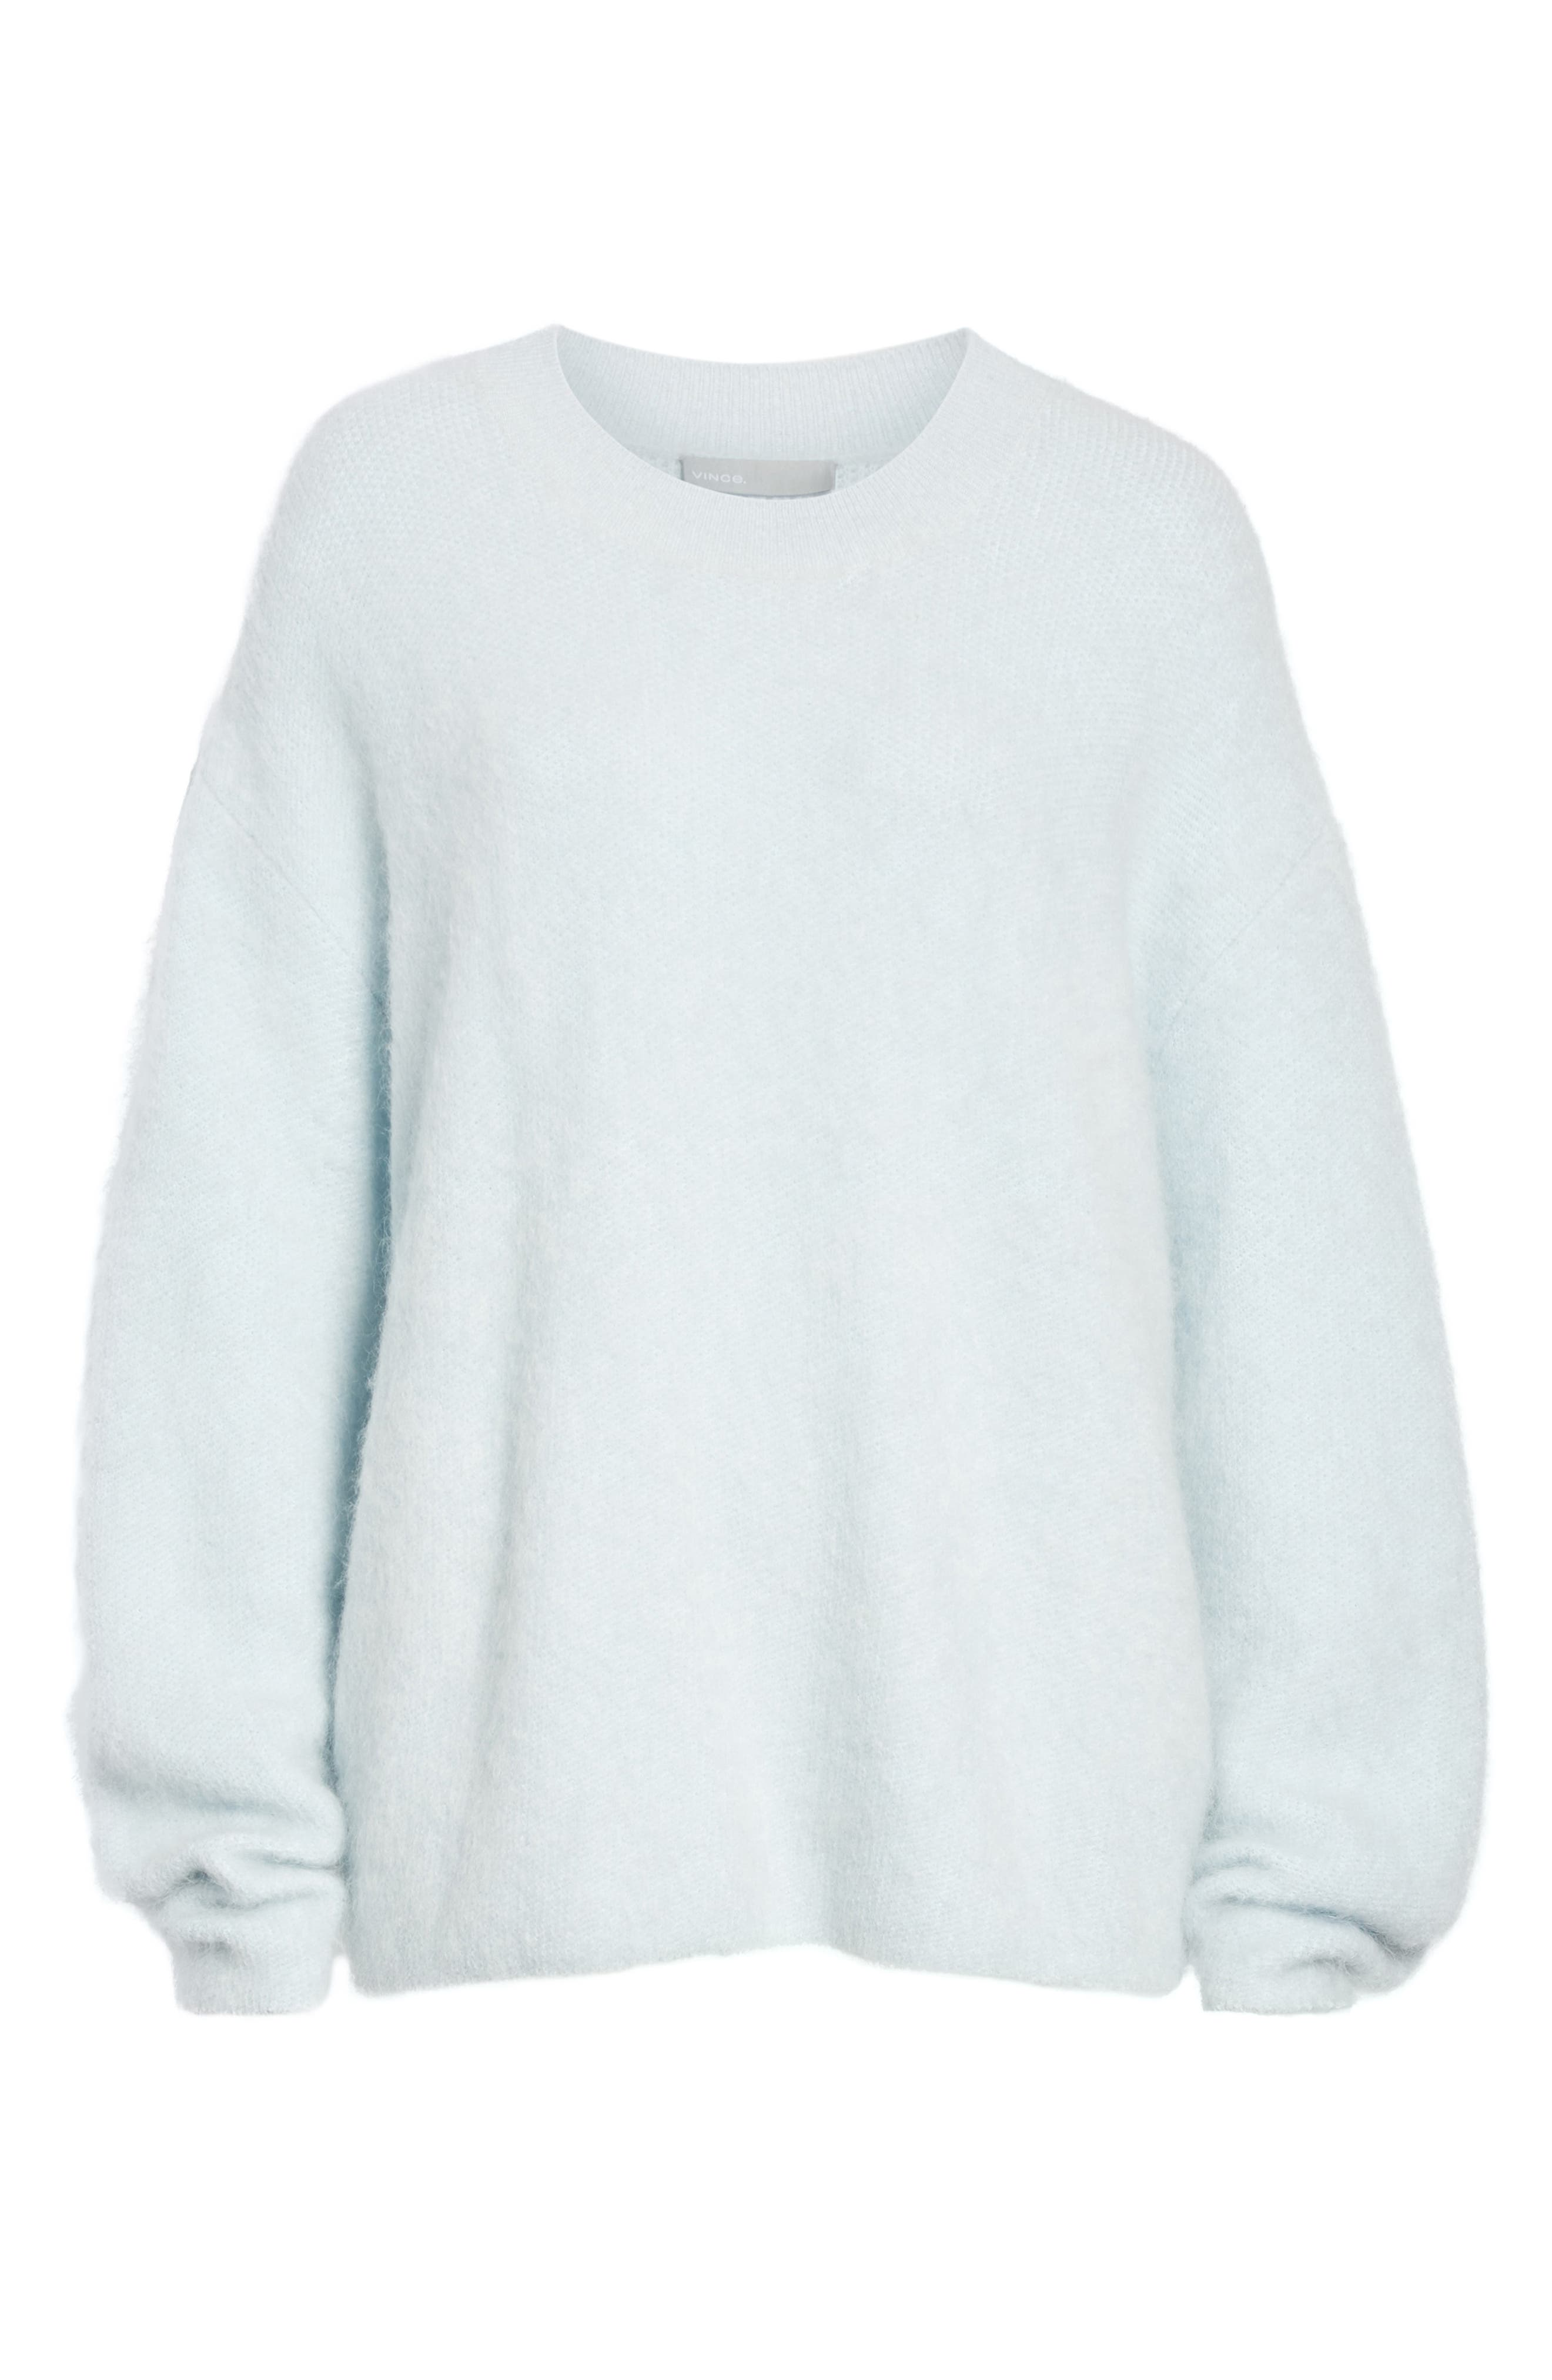 VINCE, Oversize Sweater, Alternate thumbnail 6, color, ICE/ BLUE